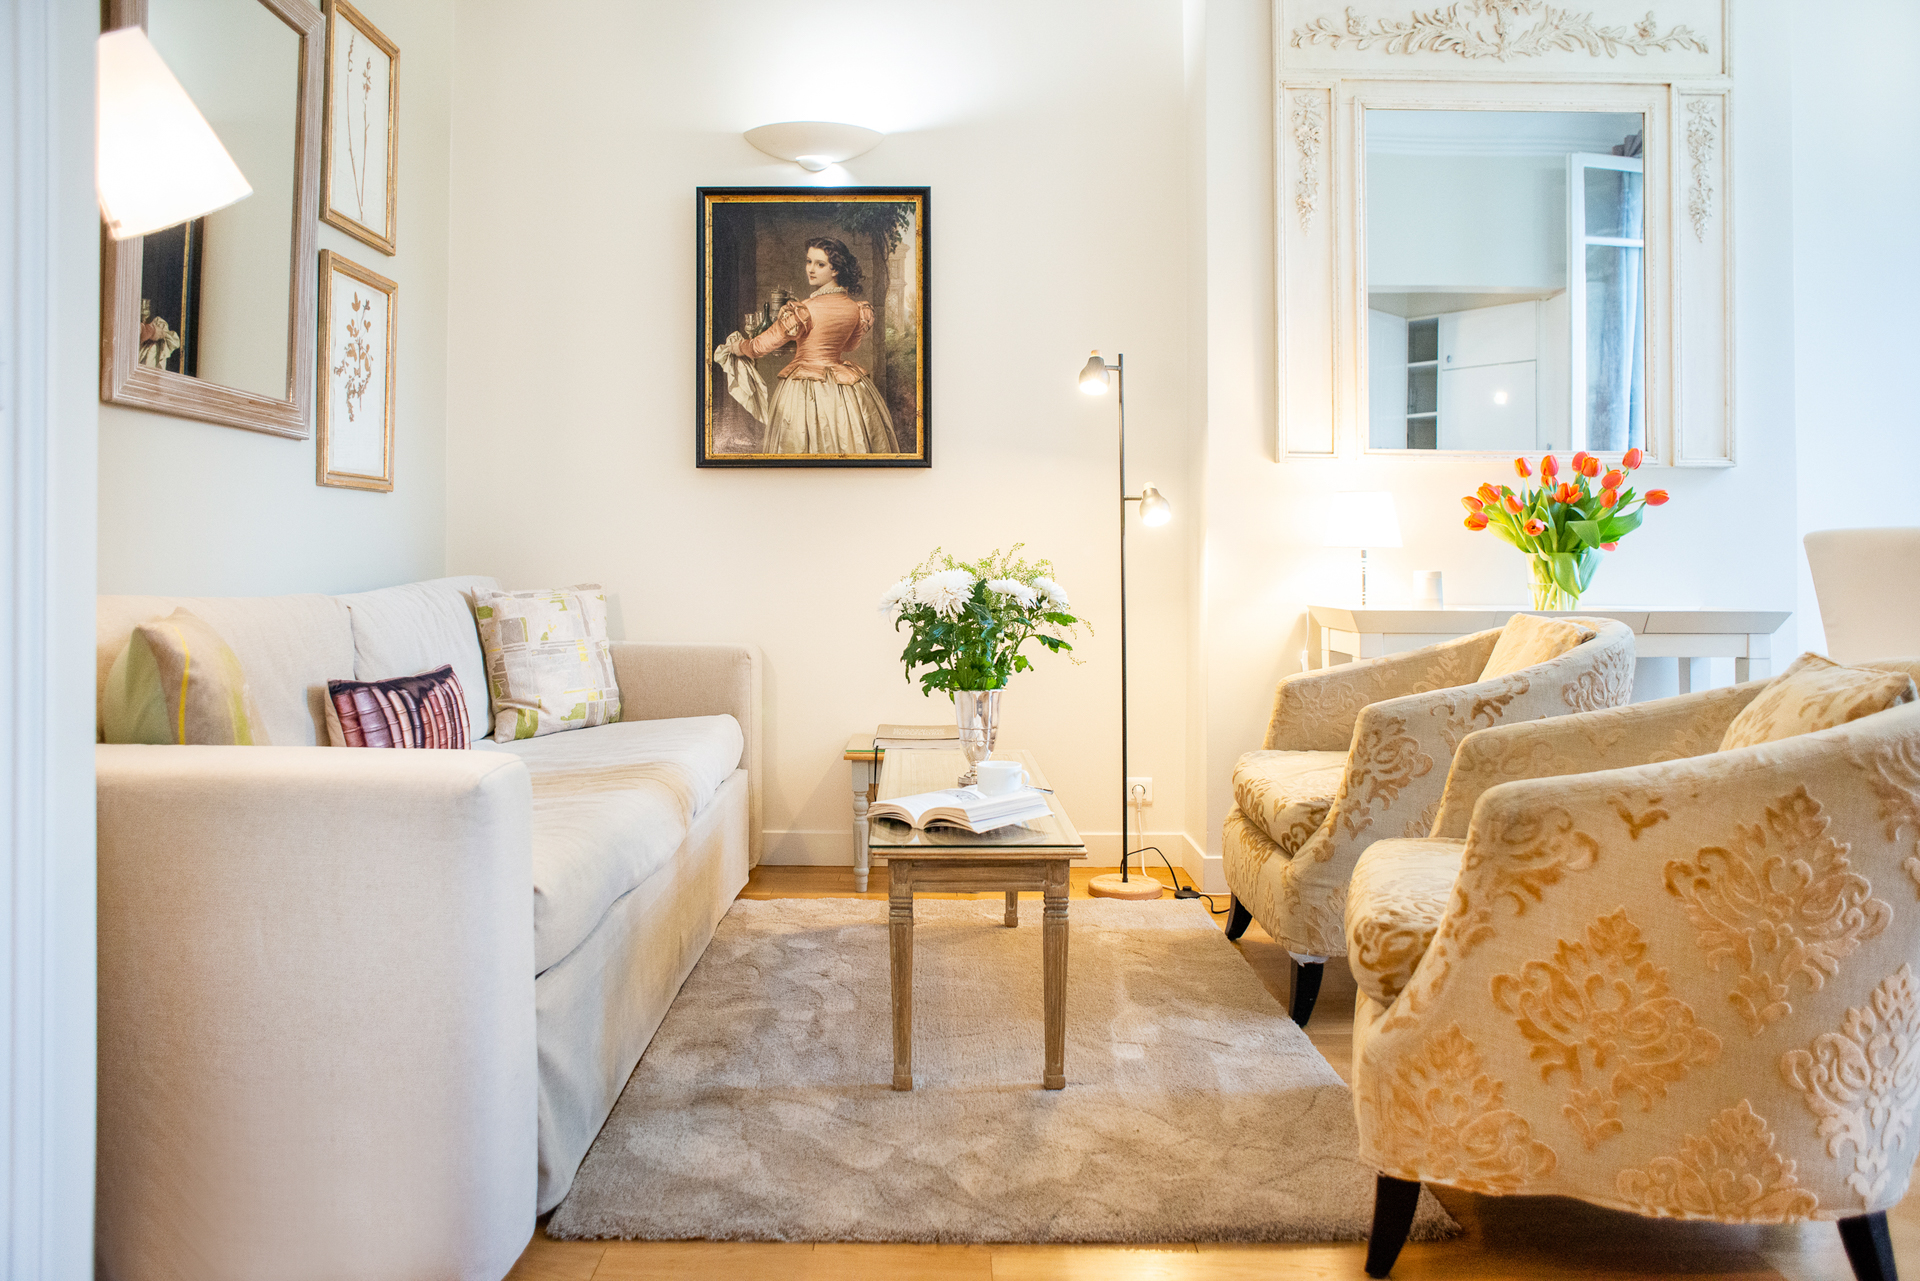 Sitting area in the Corent apartment by Paris Perfect